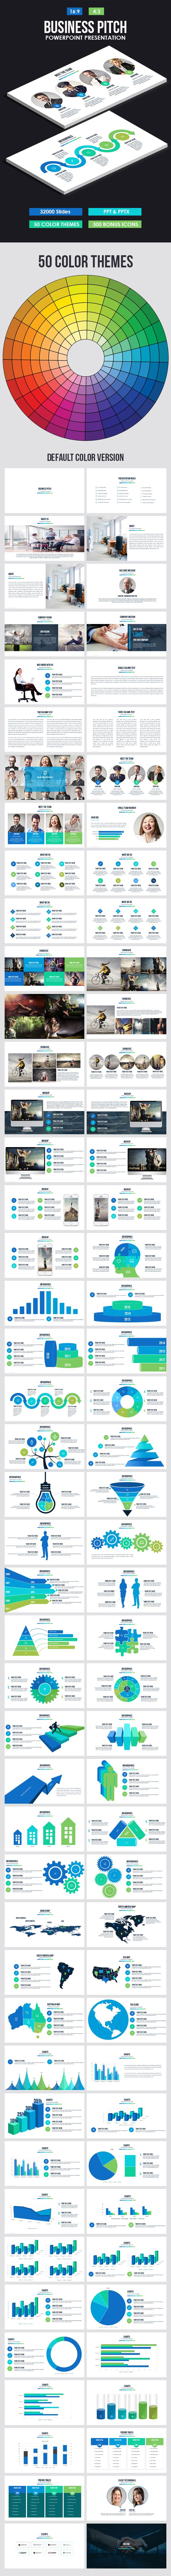 Business Pitch Powerpoint Presentation - Business PowerPoint Templates